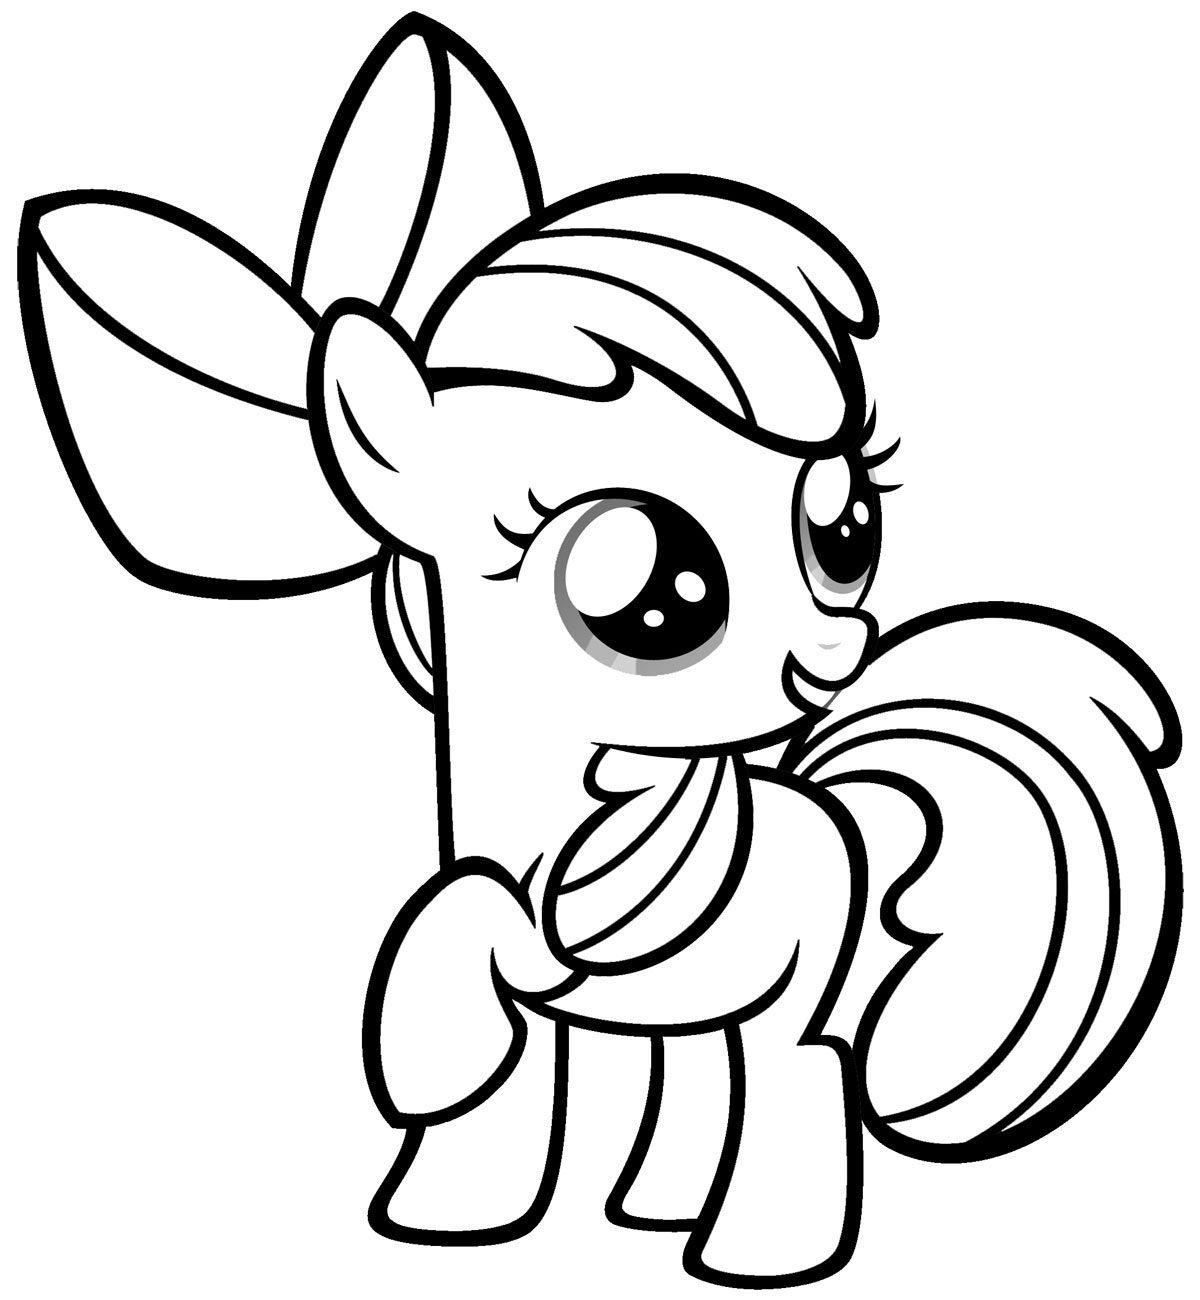 Little Pony Coloring Pages - Free Printable My Little Pony Coloring Pages for Kids